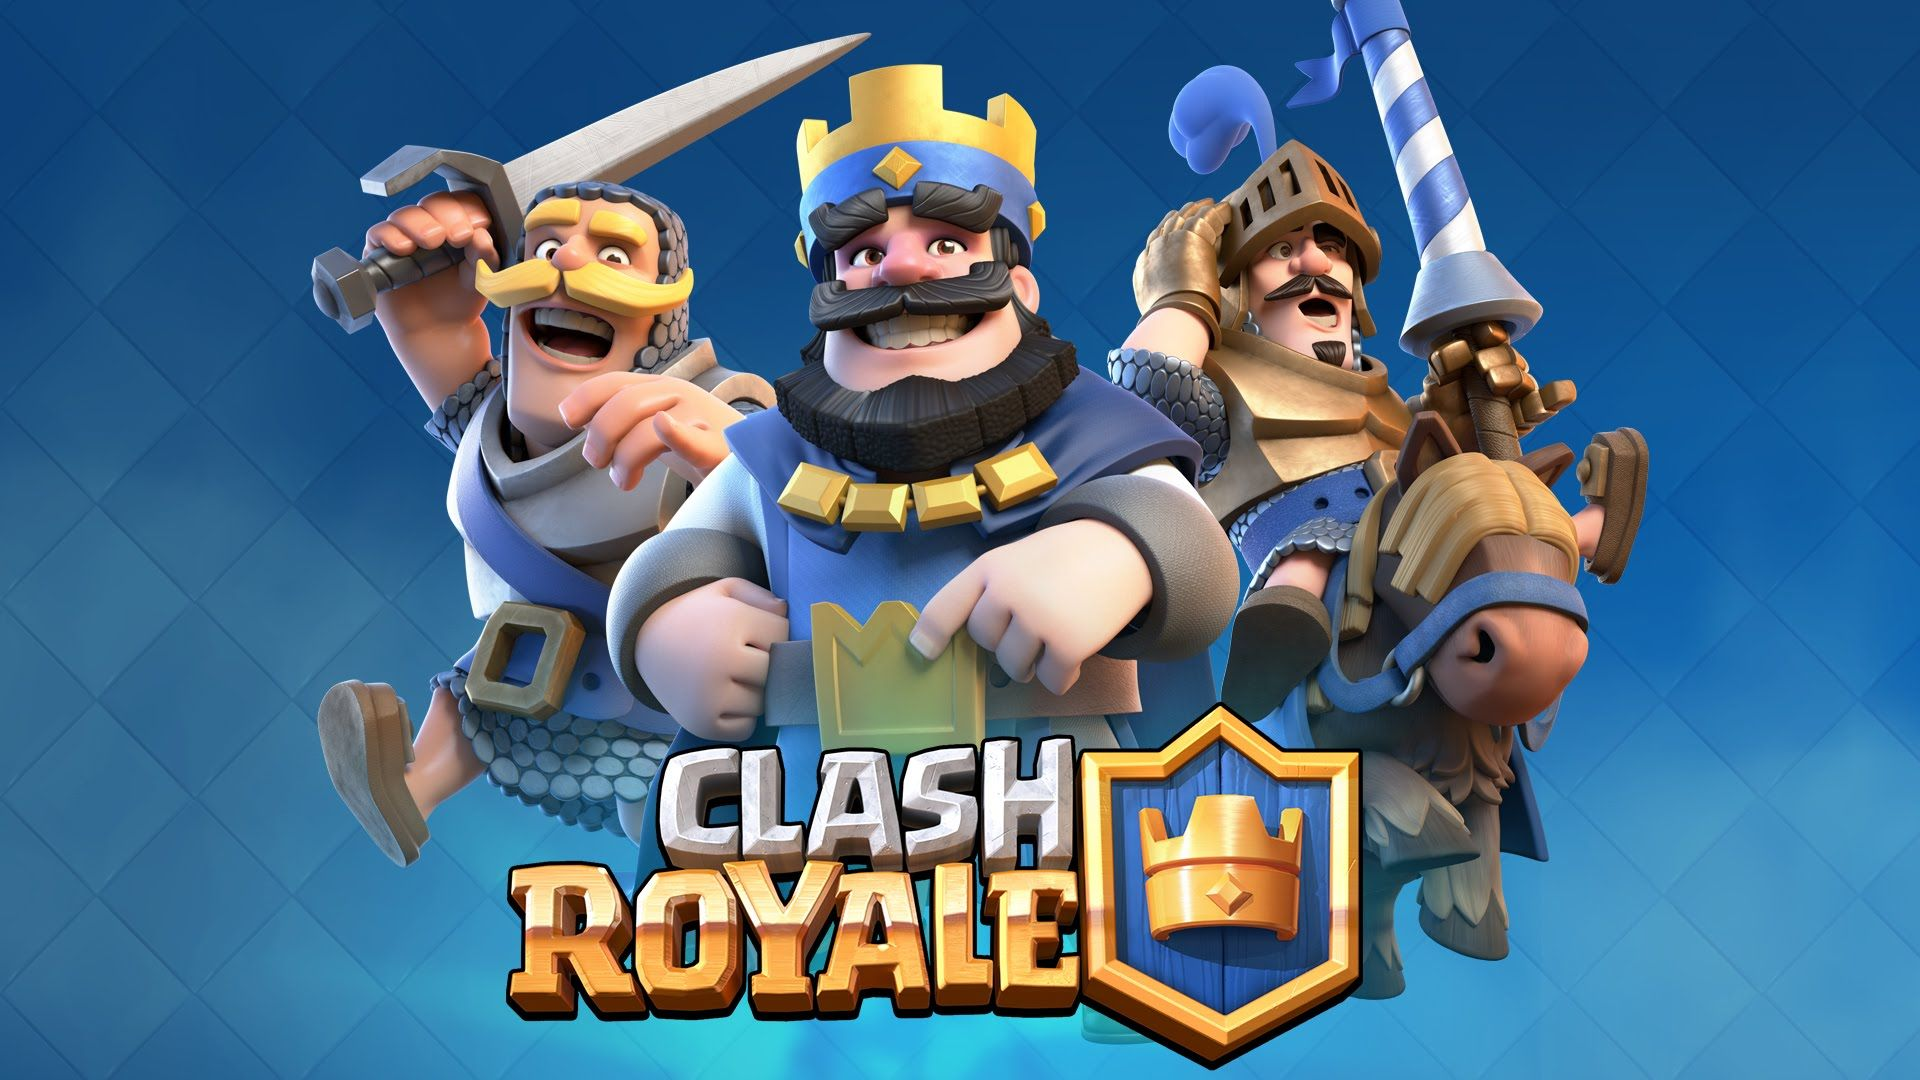 Favori Royale Clash http://ift.tt/1STR6PC Royale Clash http://ift.tt  DQ35